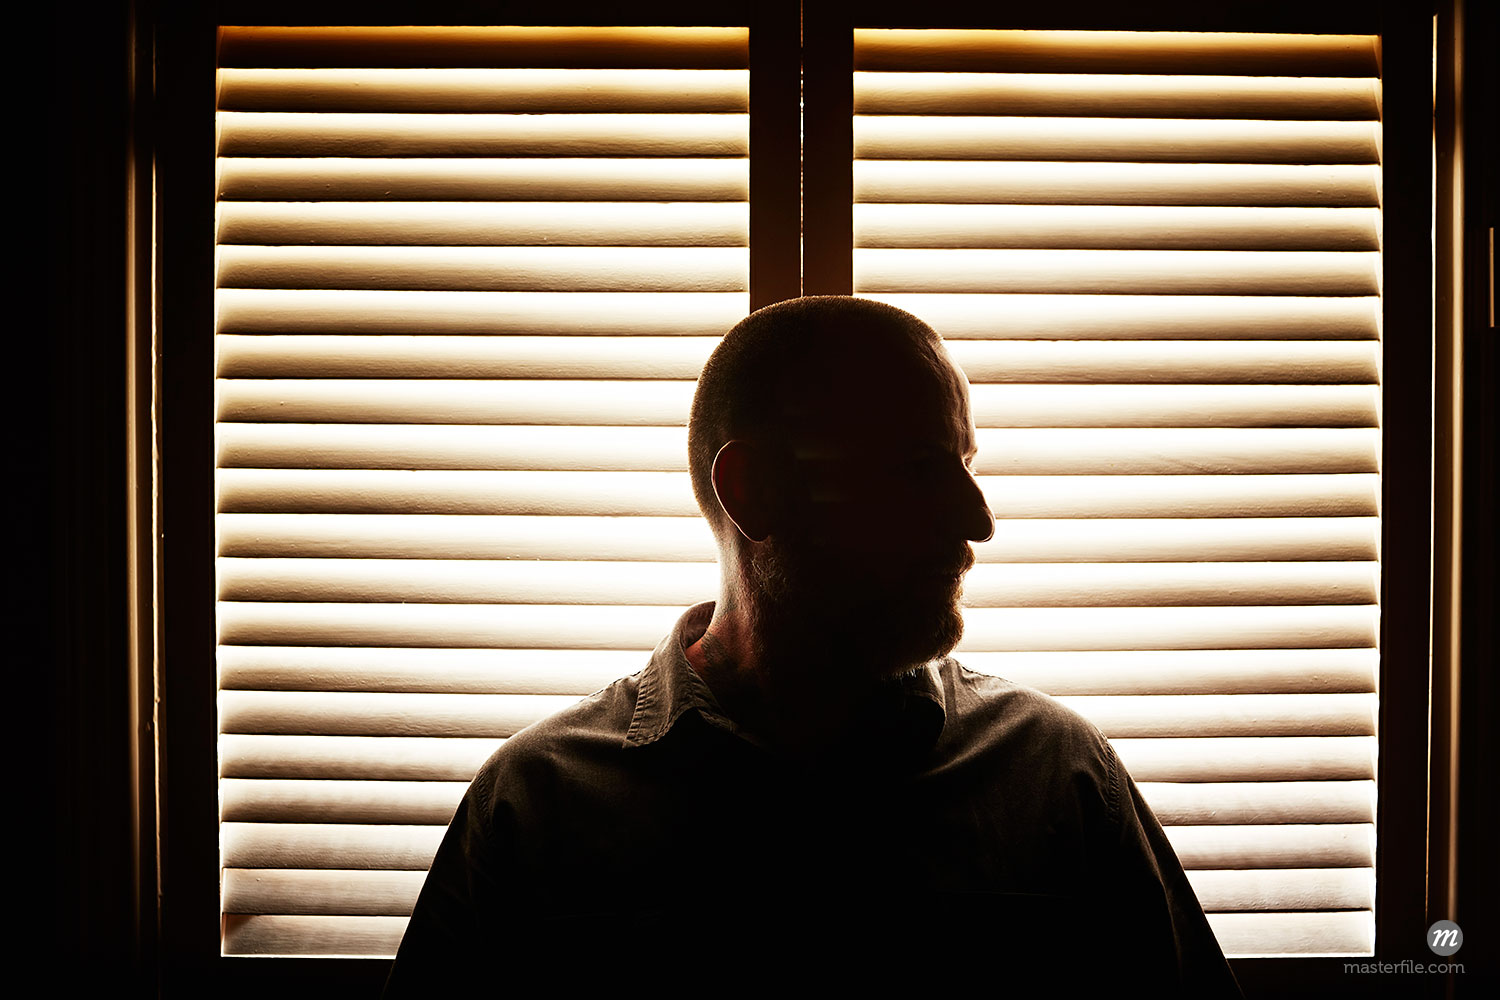 Portrait of silhouetted mature man in front of window blind  ©  Cultura RM / Masterfile